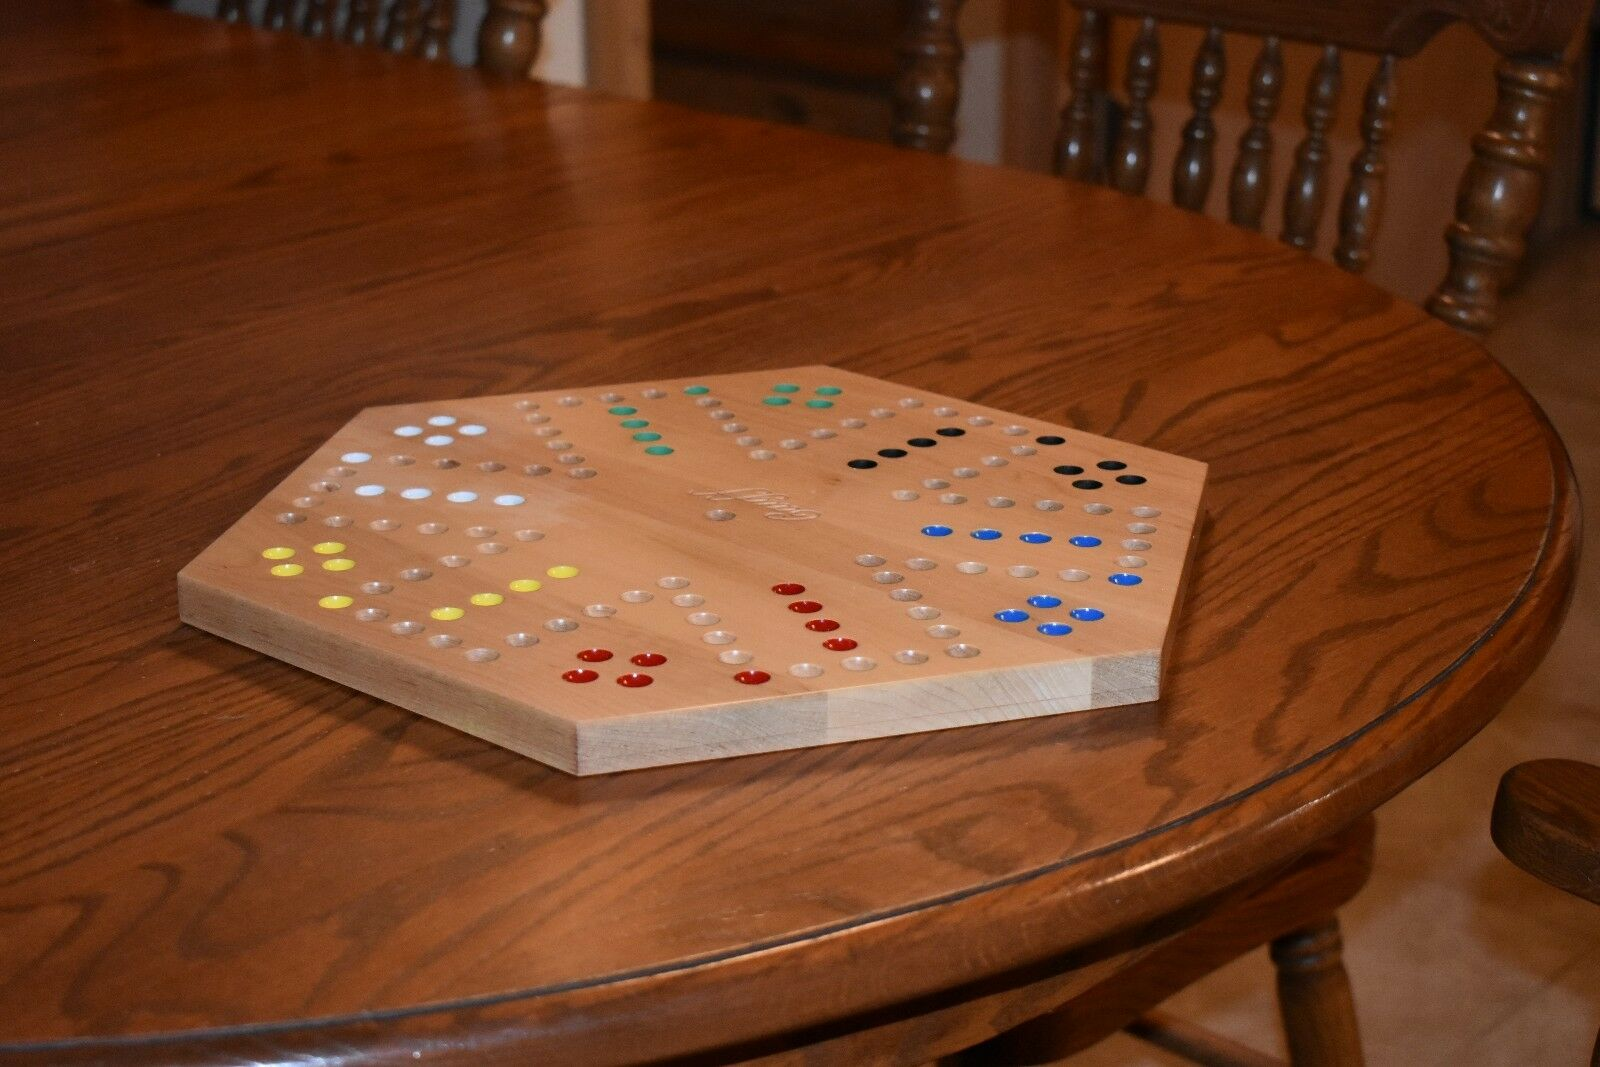 Solid Maple Double Sided Aggravation Aggravation Aggravation Marbles Board Game Hand Painted 20 inch bf4b64